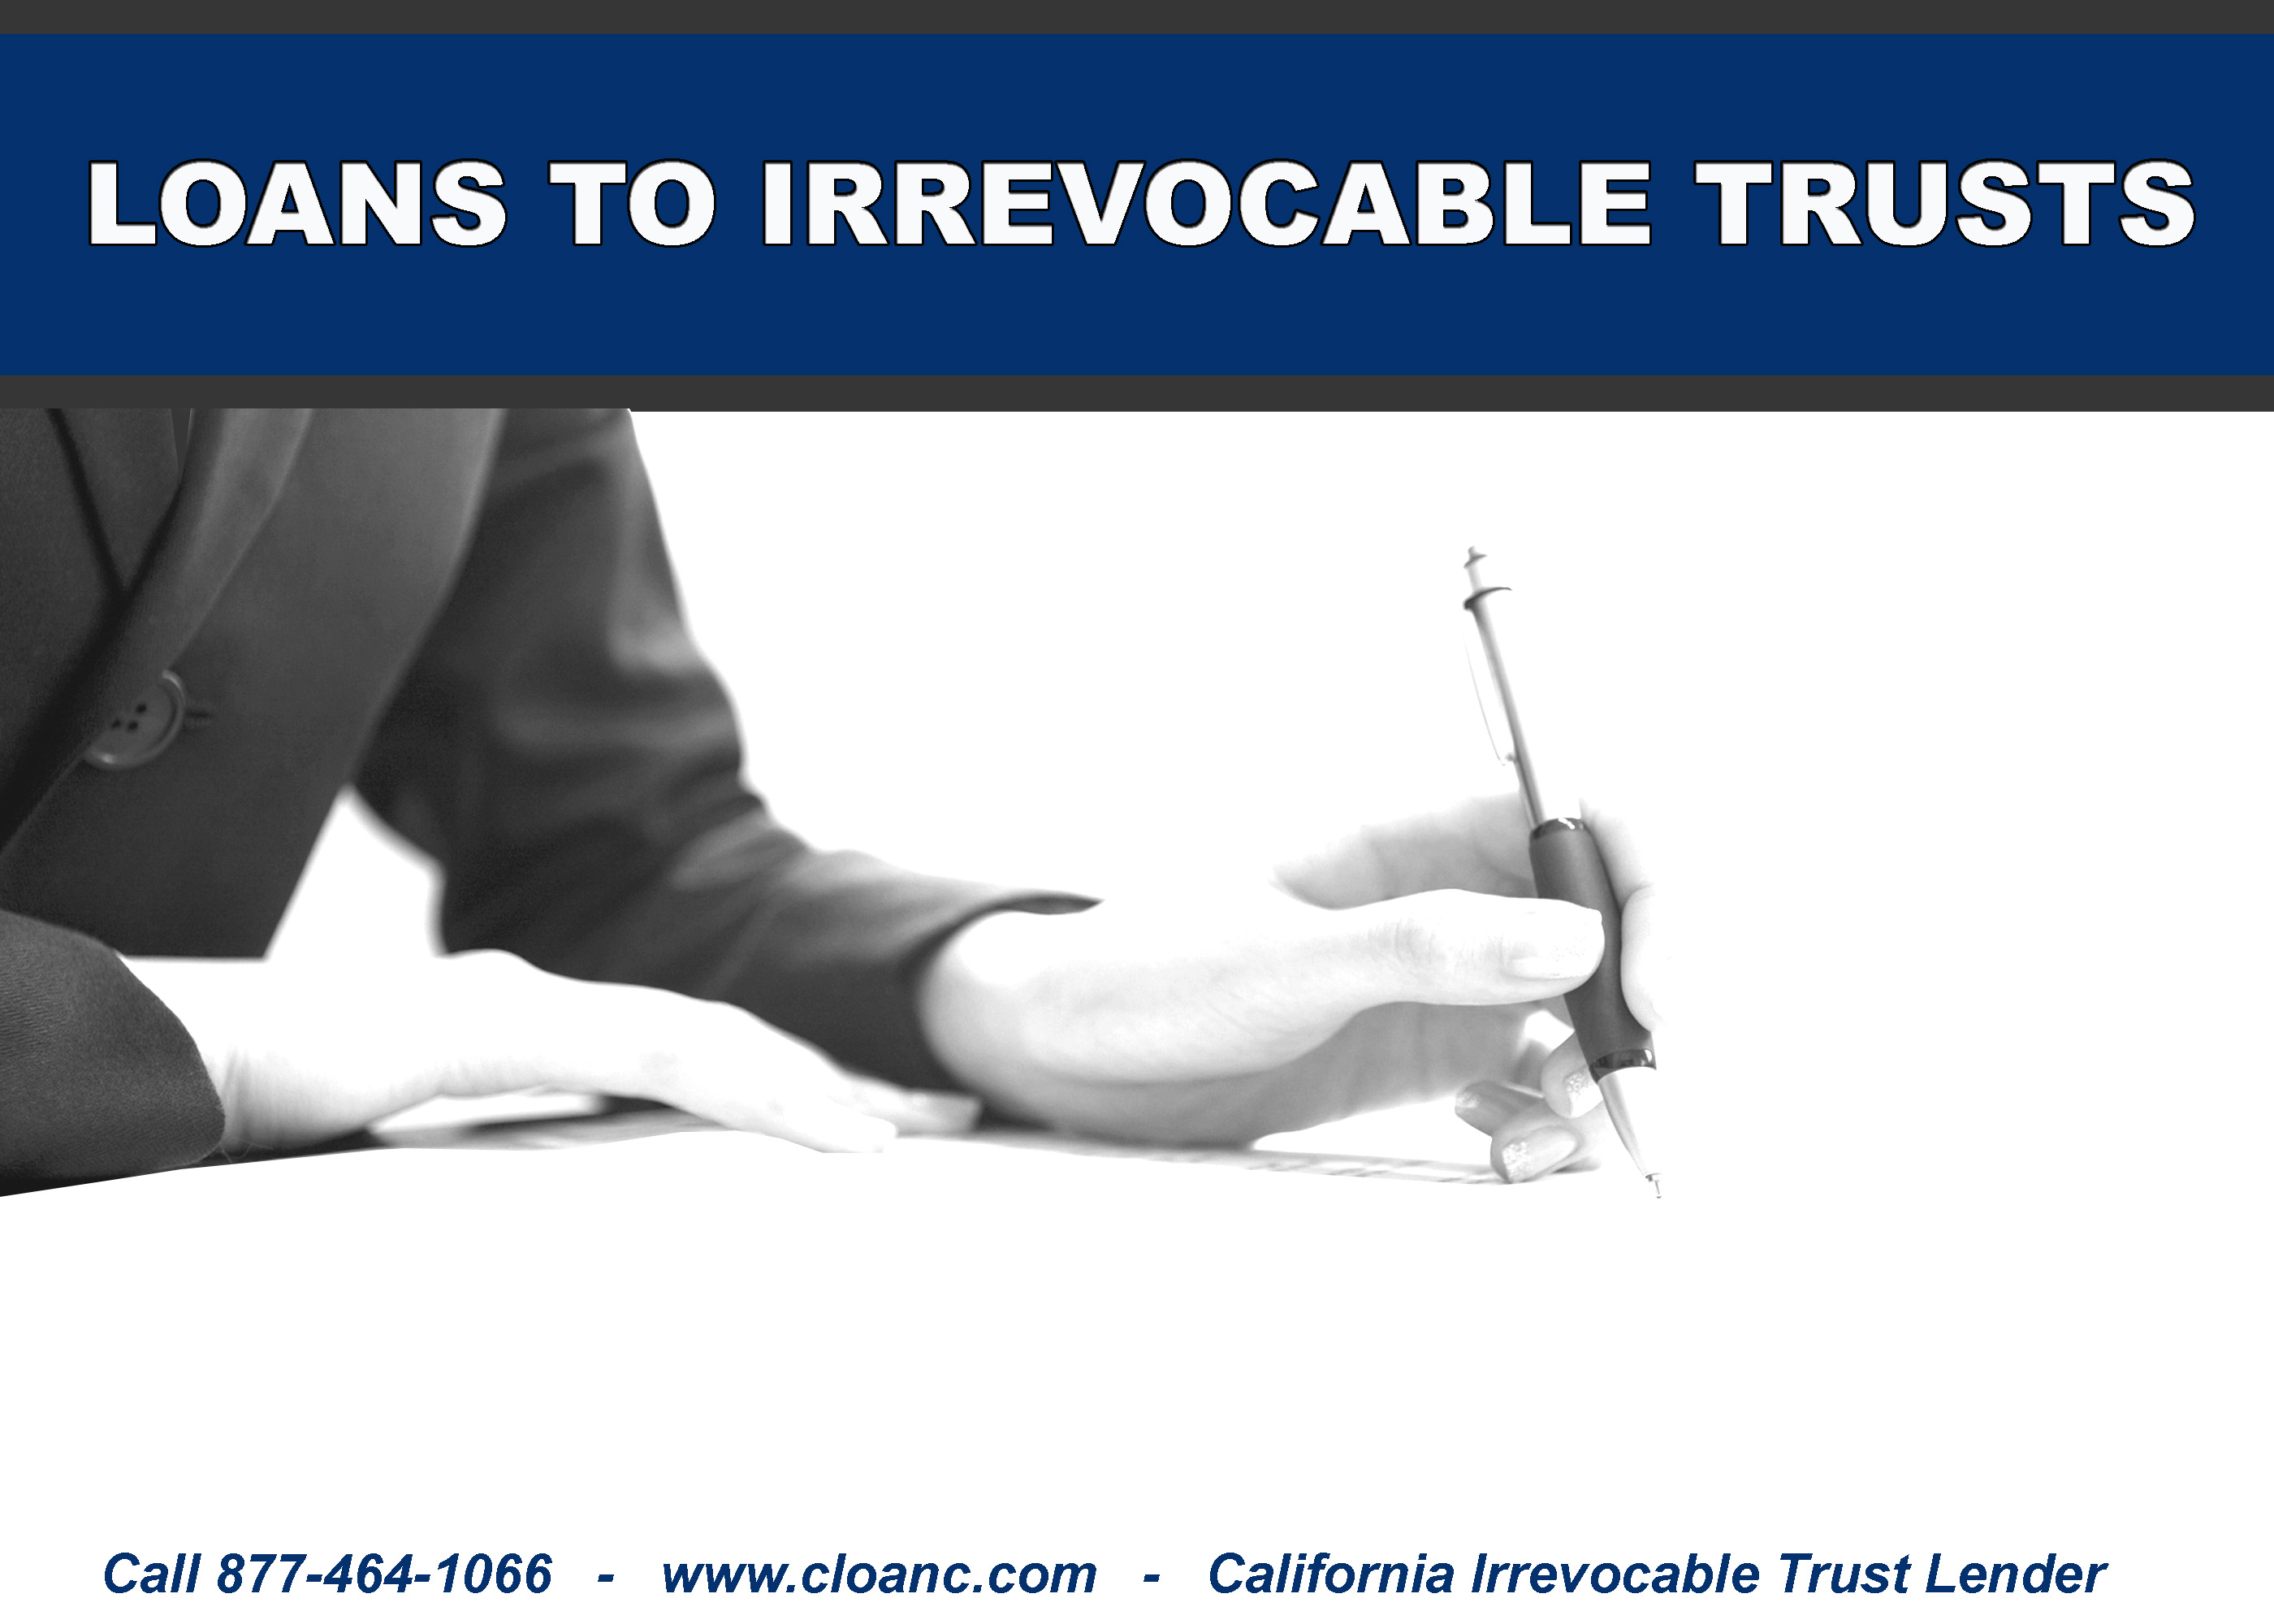 Lender to Irrevocable Trusts in California